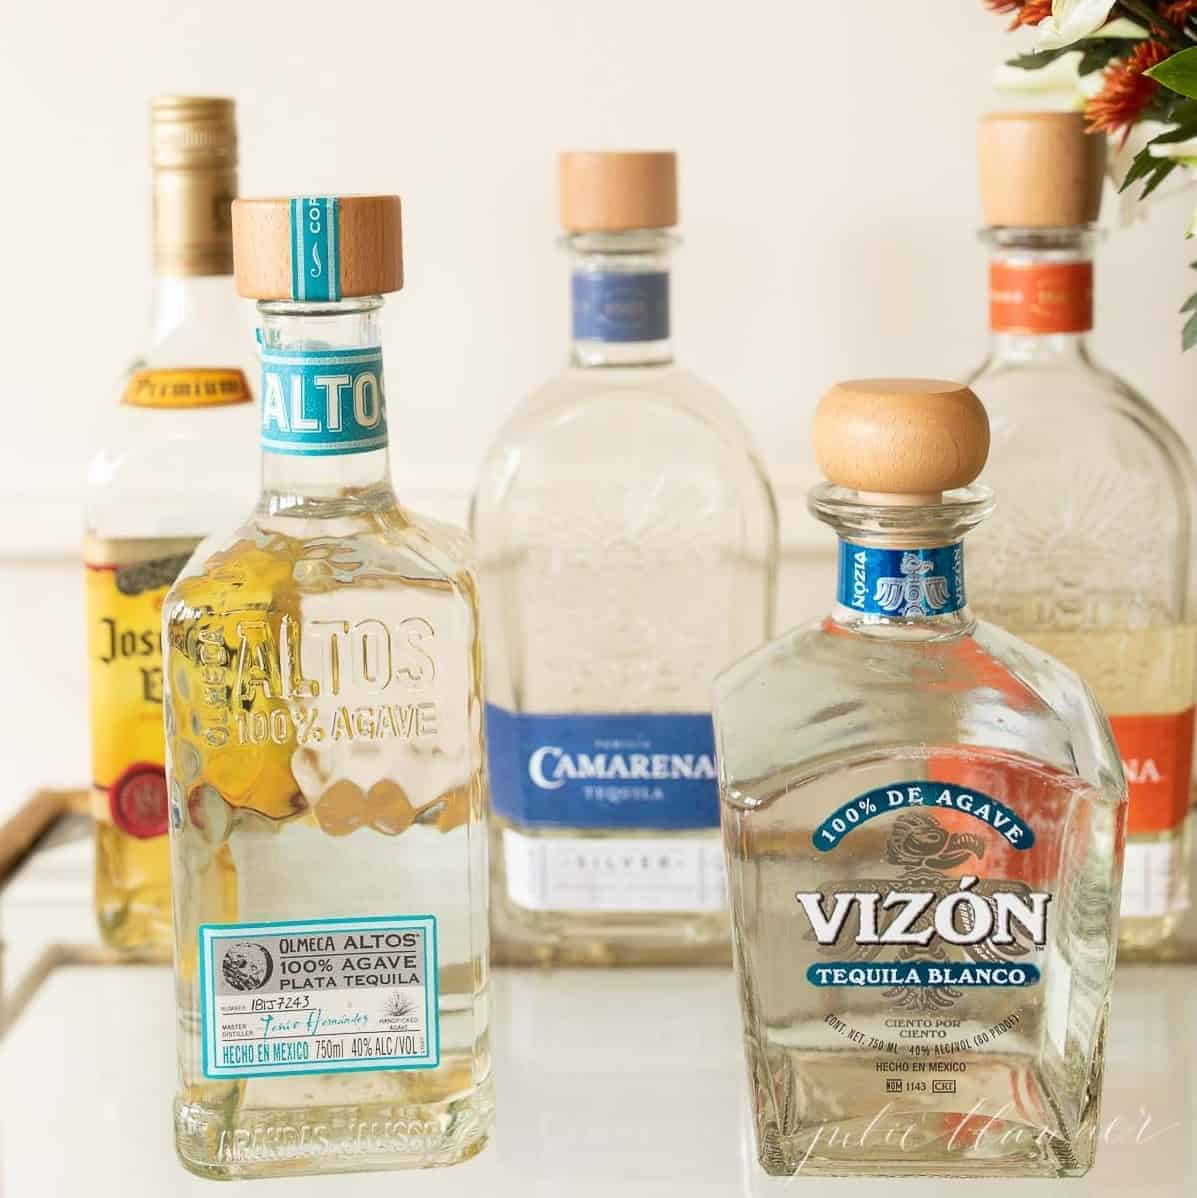 Five bottles of tequila on a clear glass bar cart.